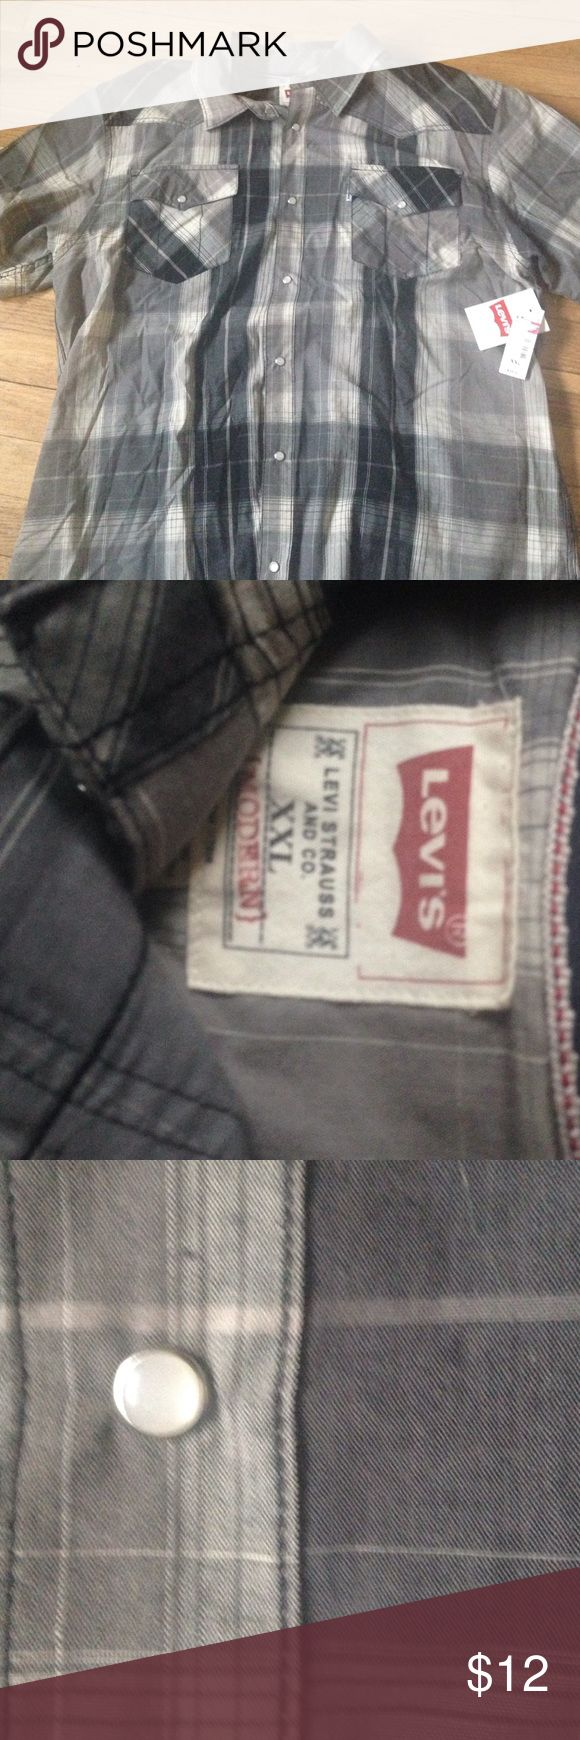 Plaid short sleeve rockabilly men's shirt Brand-new in great holiday gift. Gray plaid made by Levi Strauss. Still has tags on it. Levi's Shirts Casual Button Down Shirts